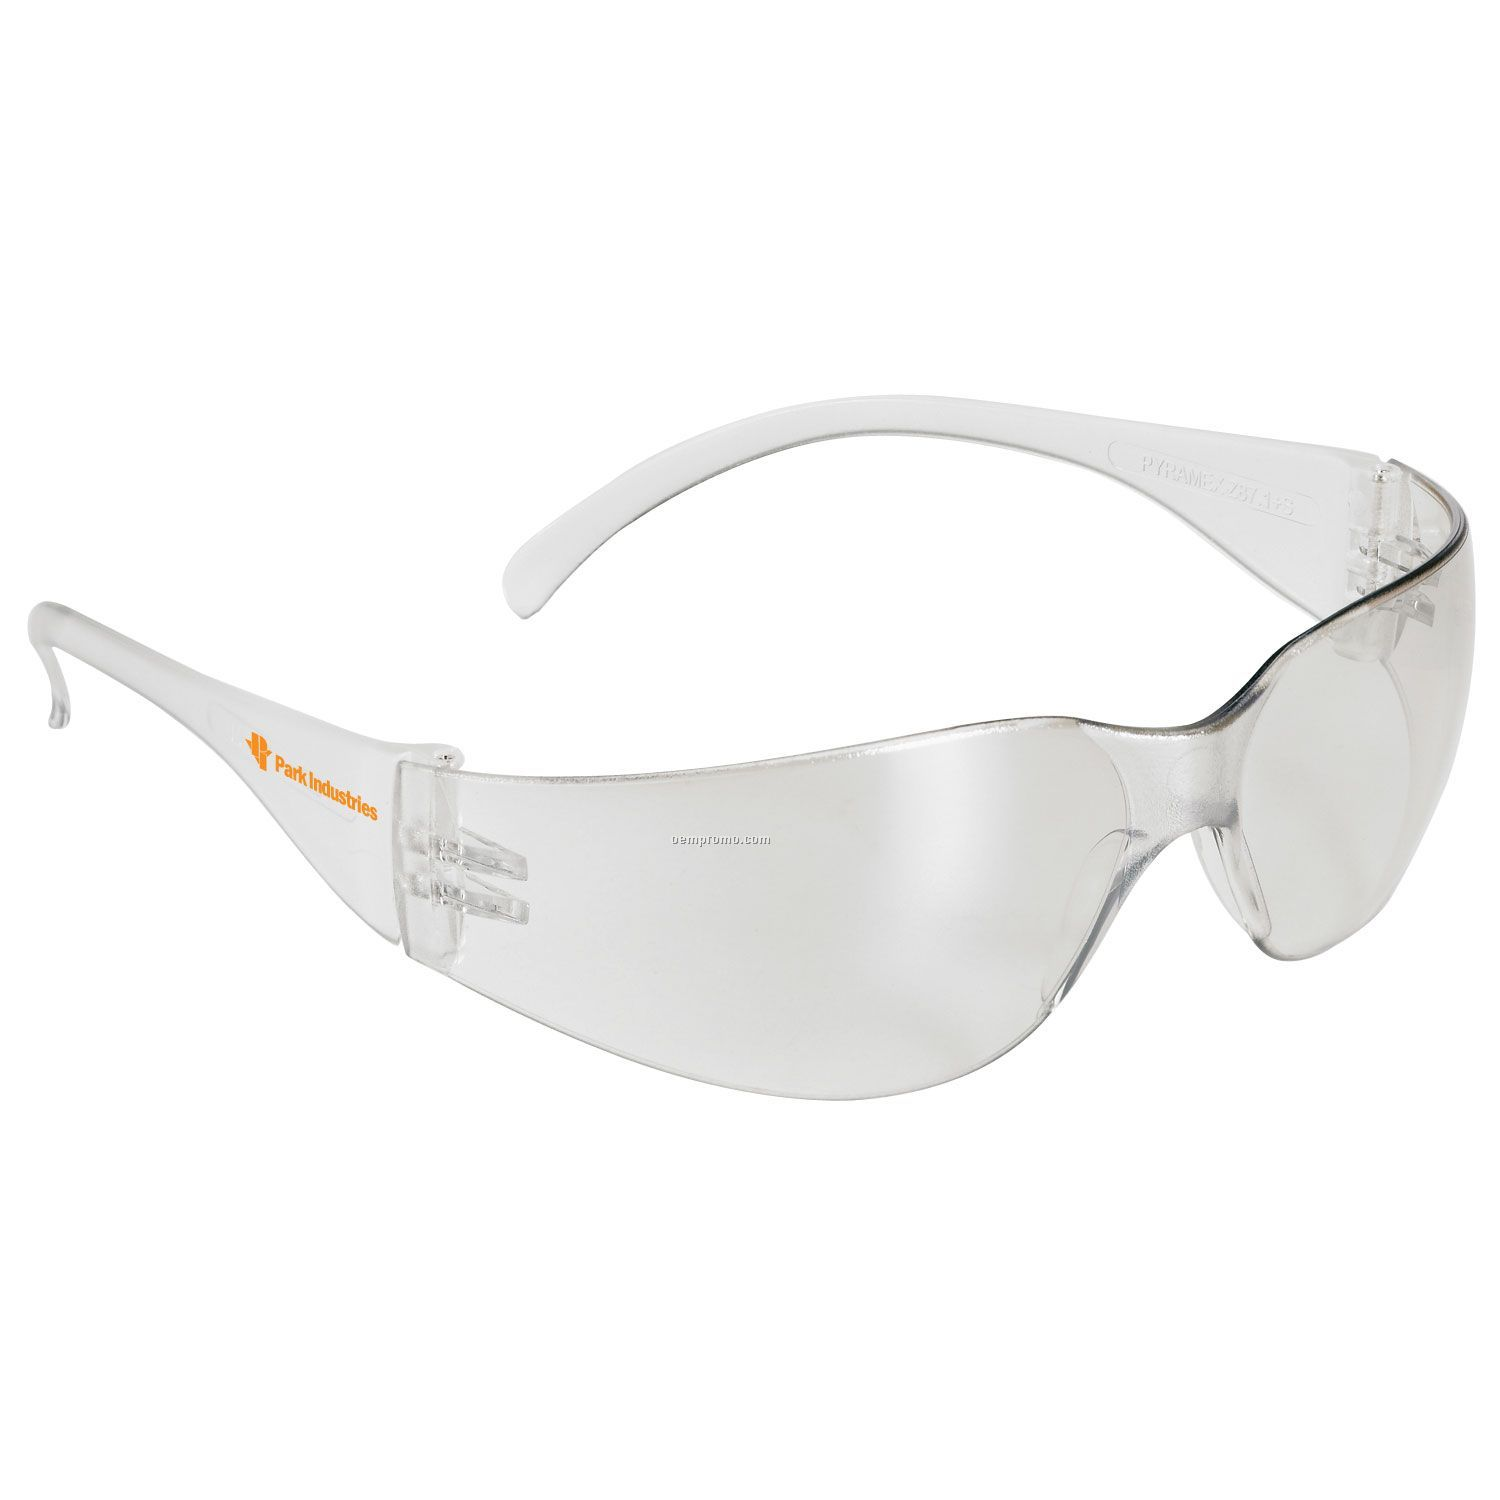 best safety glasses for construction david simchi levi